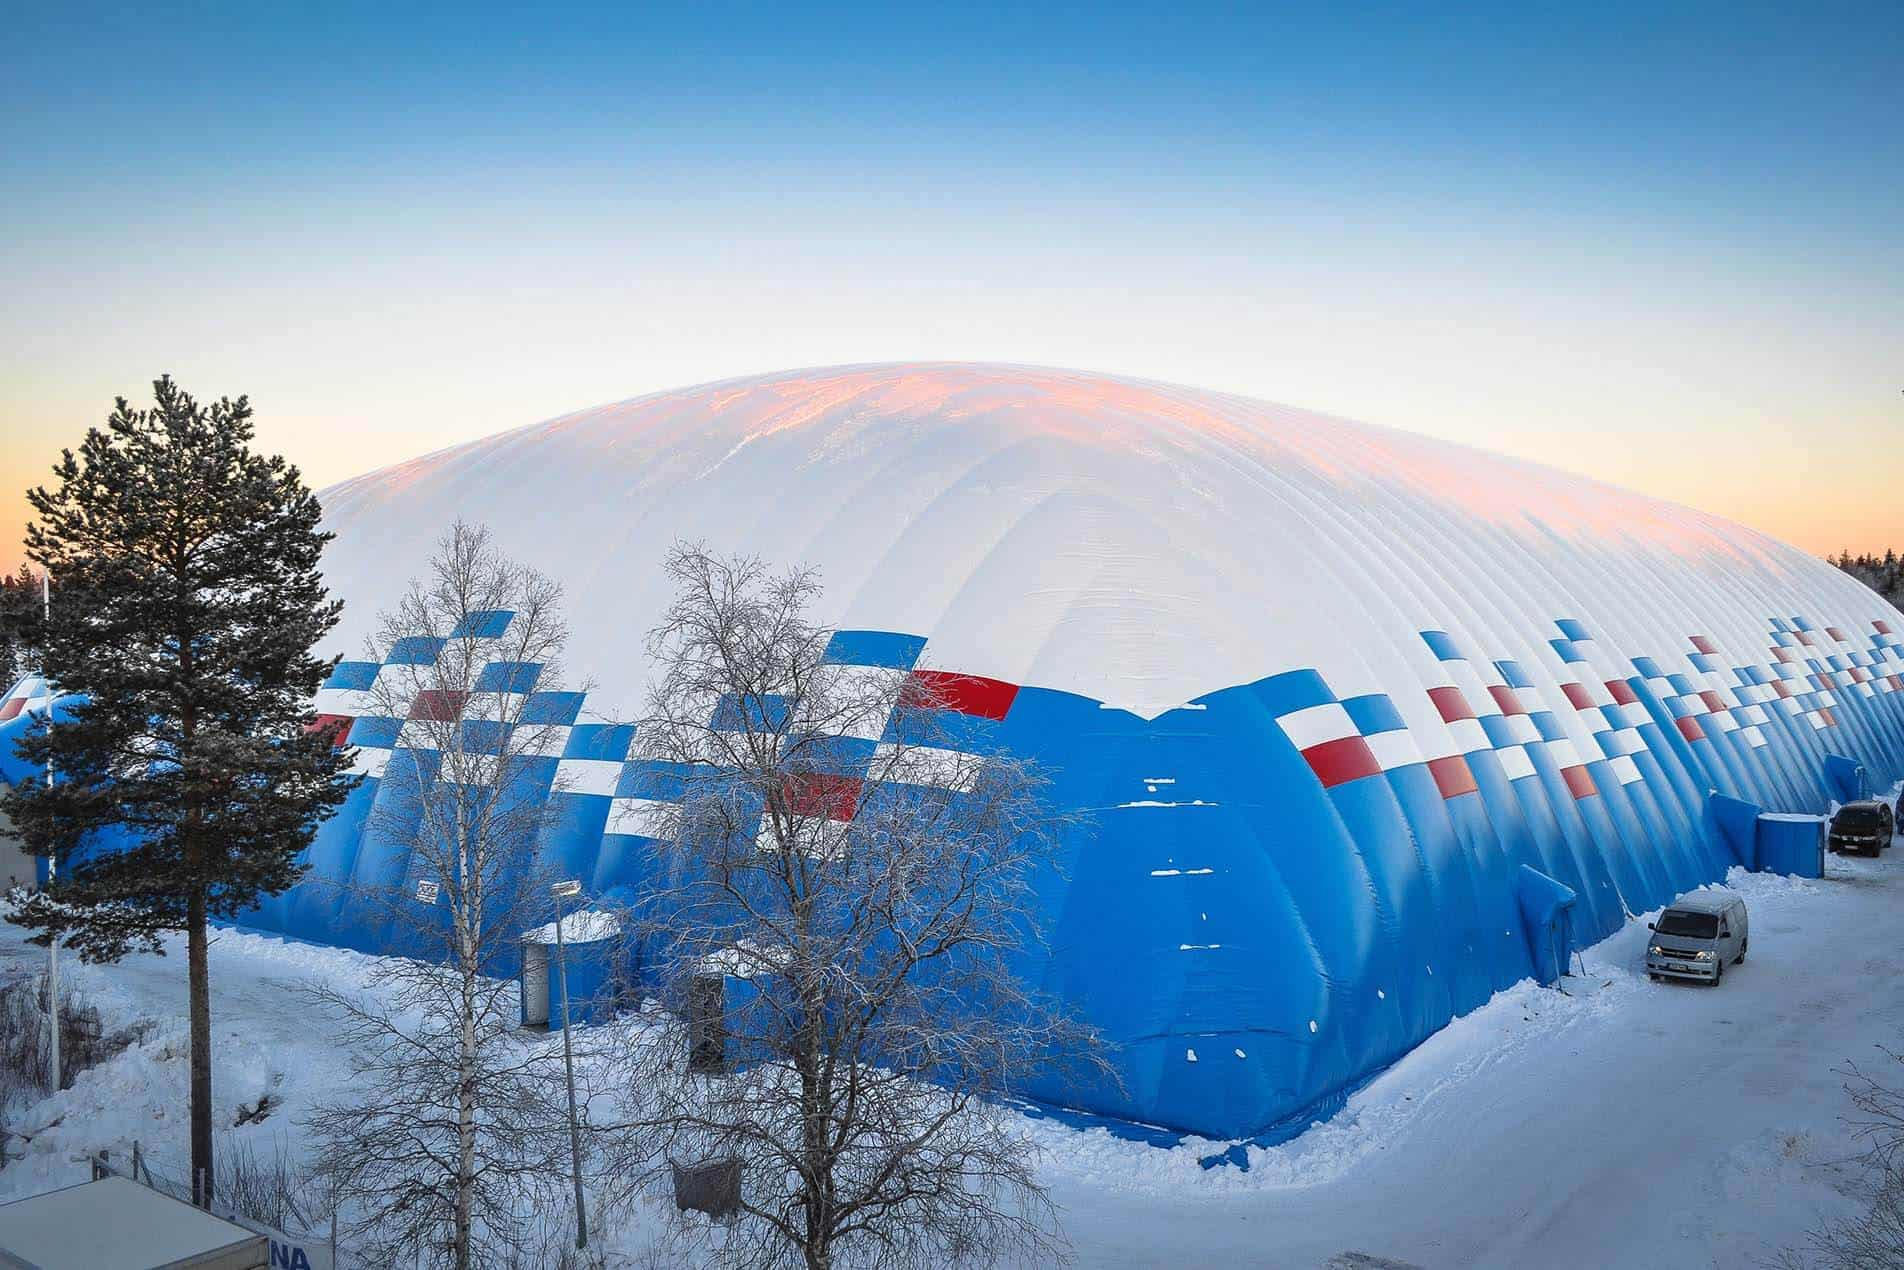 gallery-air-dome-in-snow